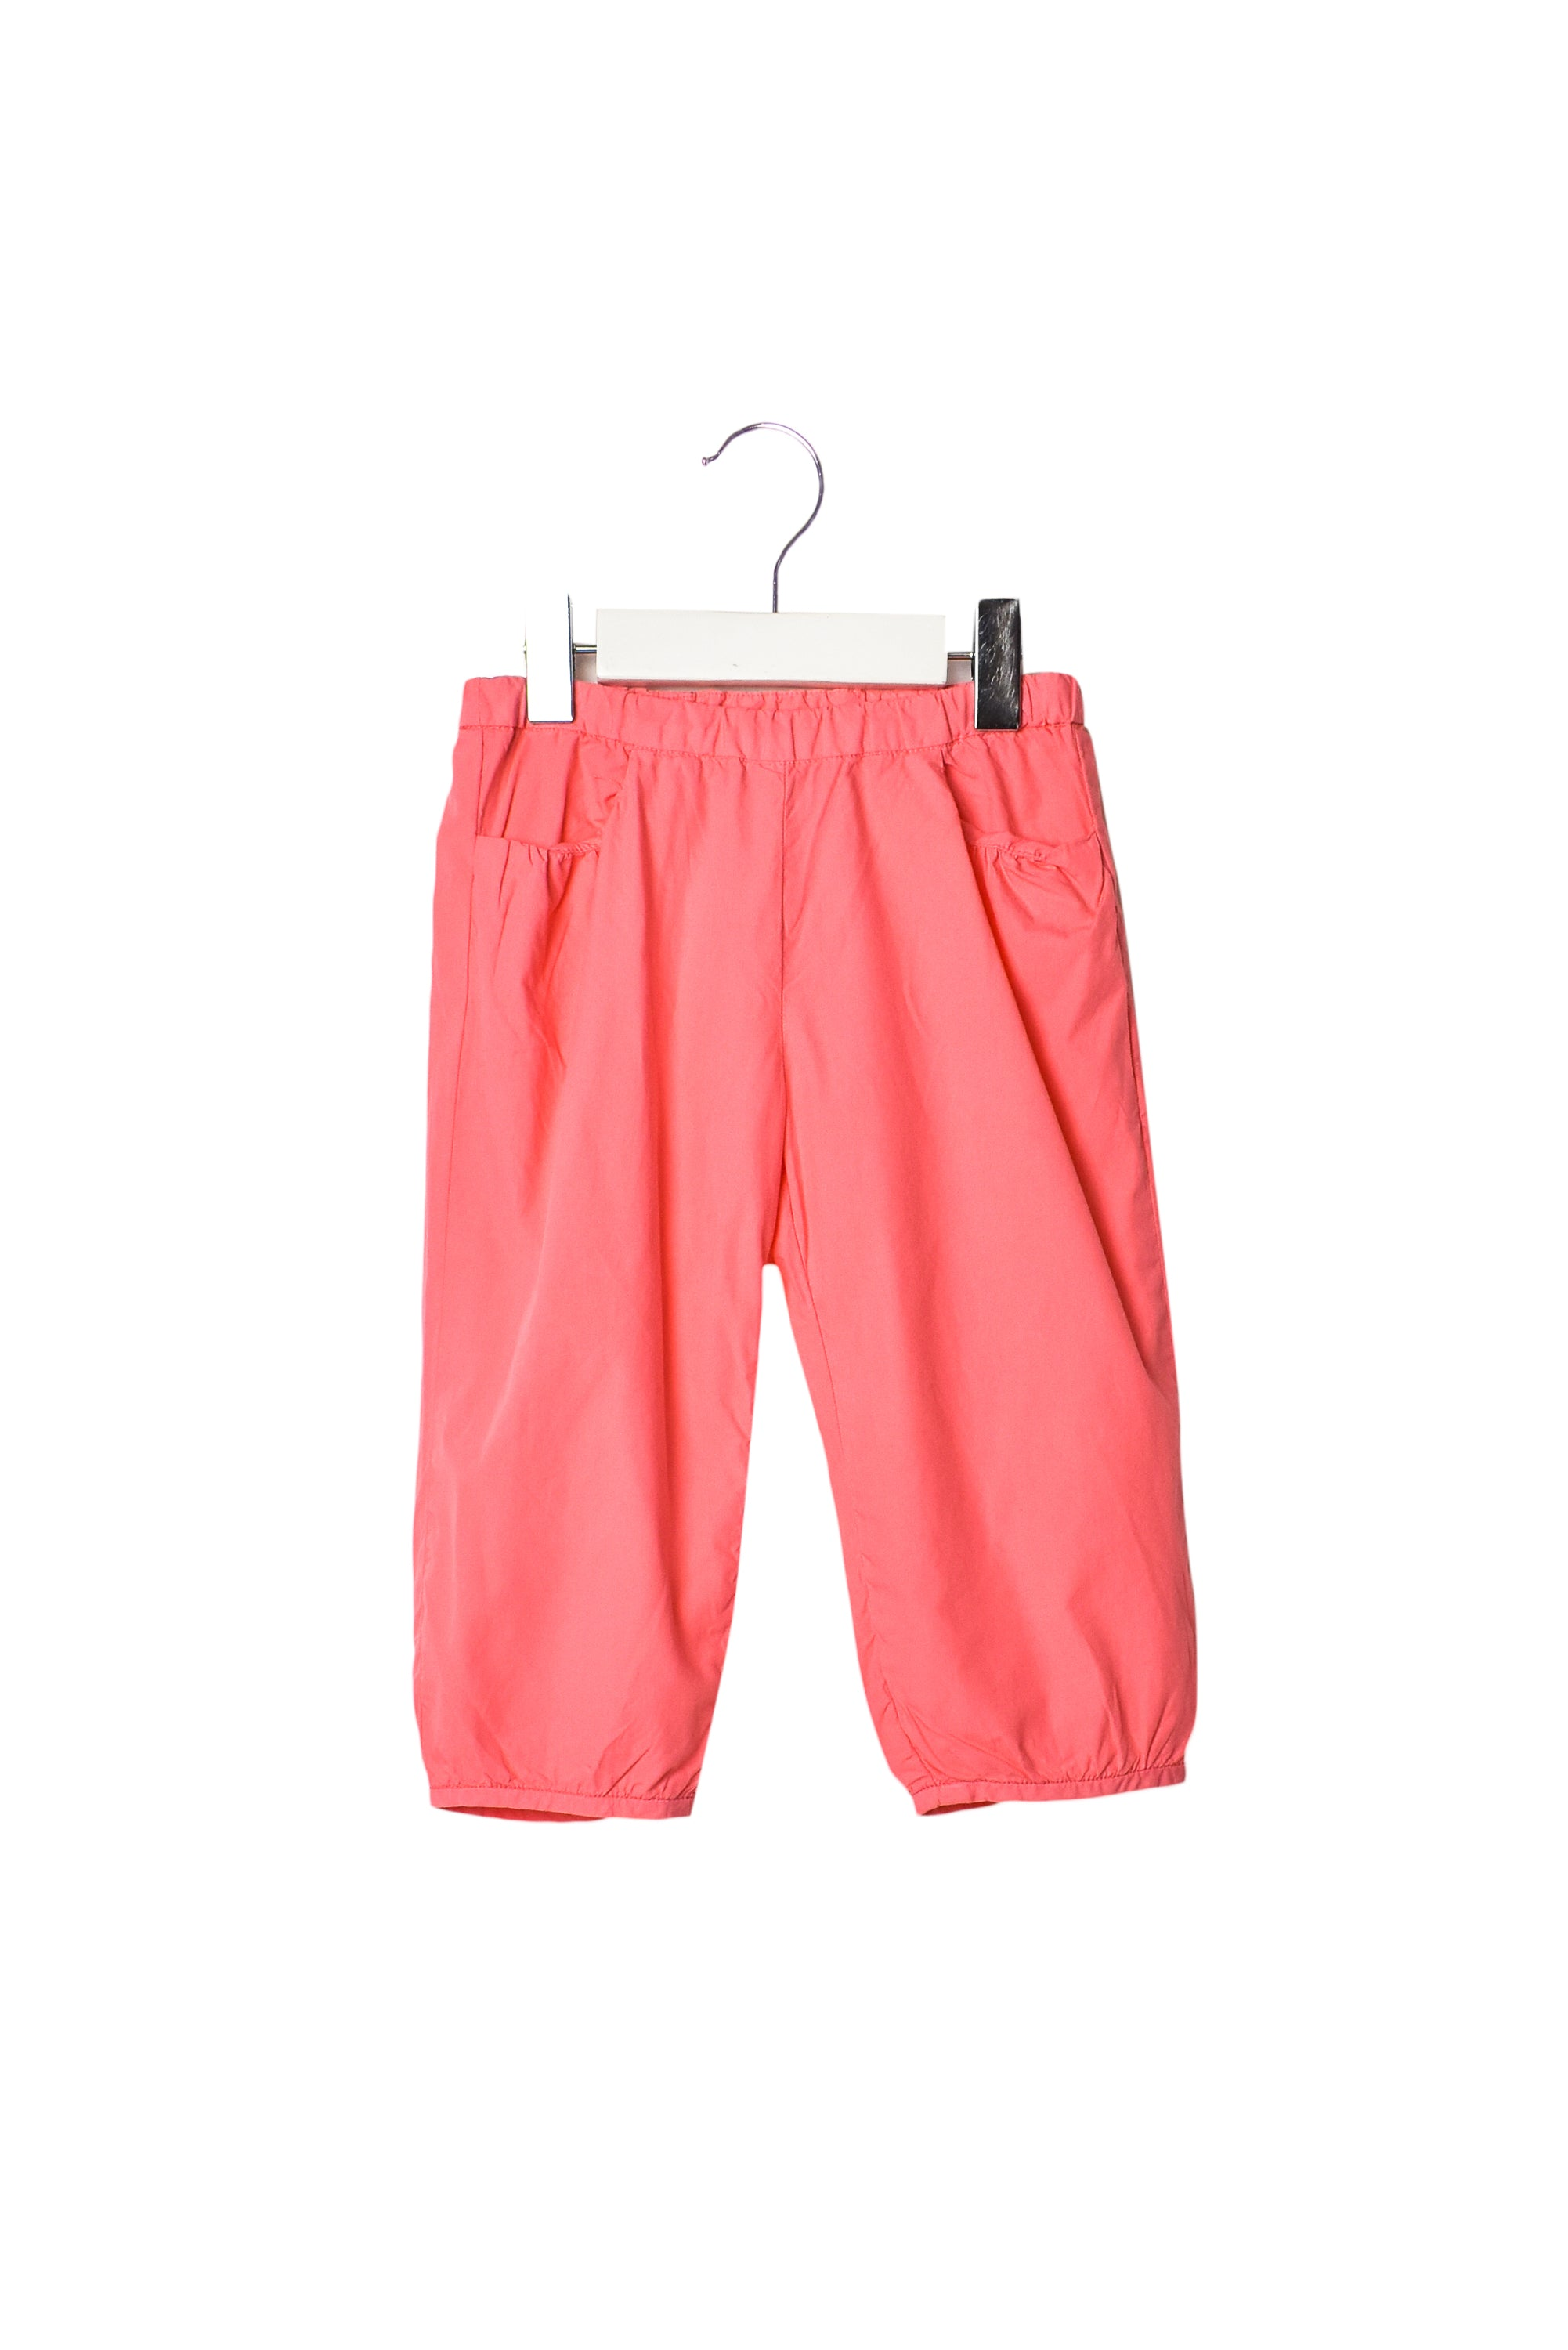 10007801 Bonpoint Kids~ Pants 2T at Retykle